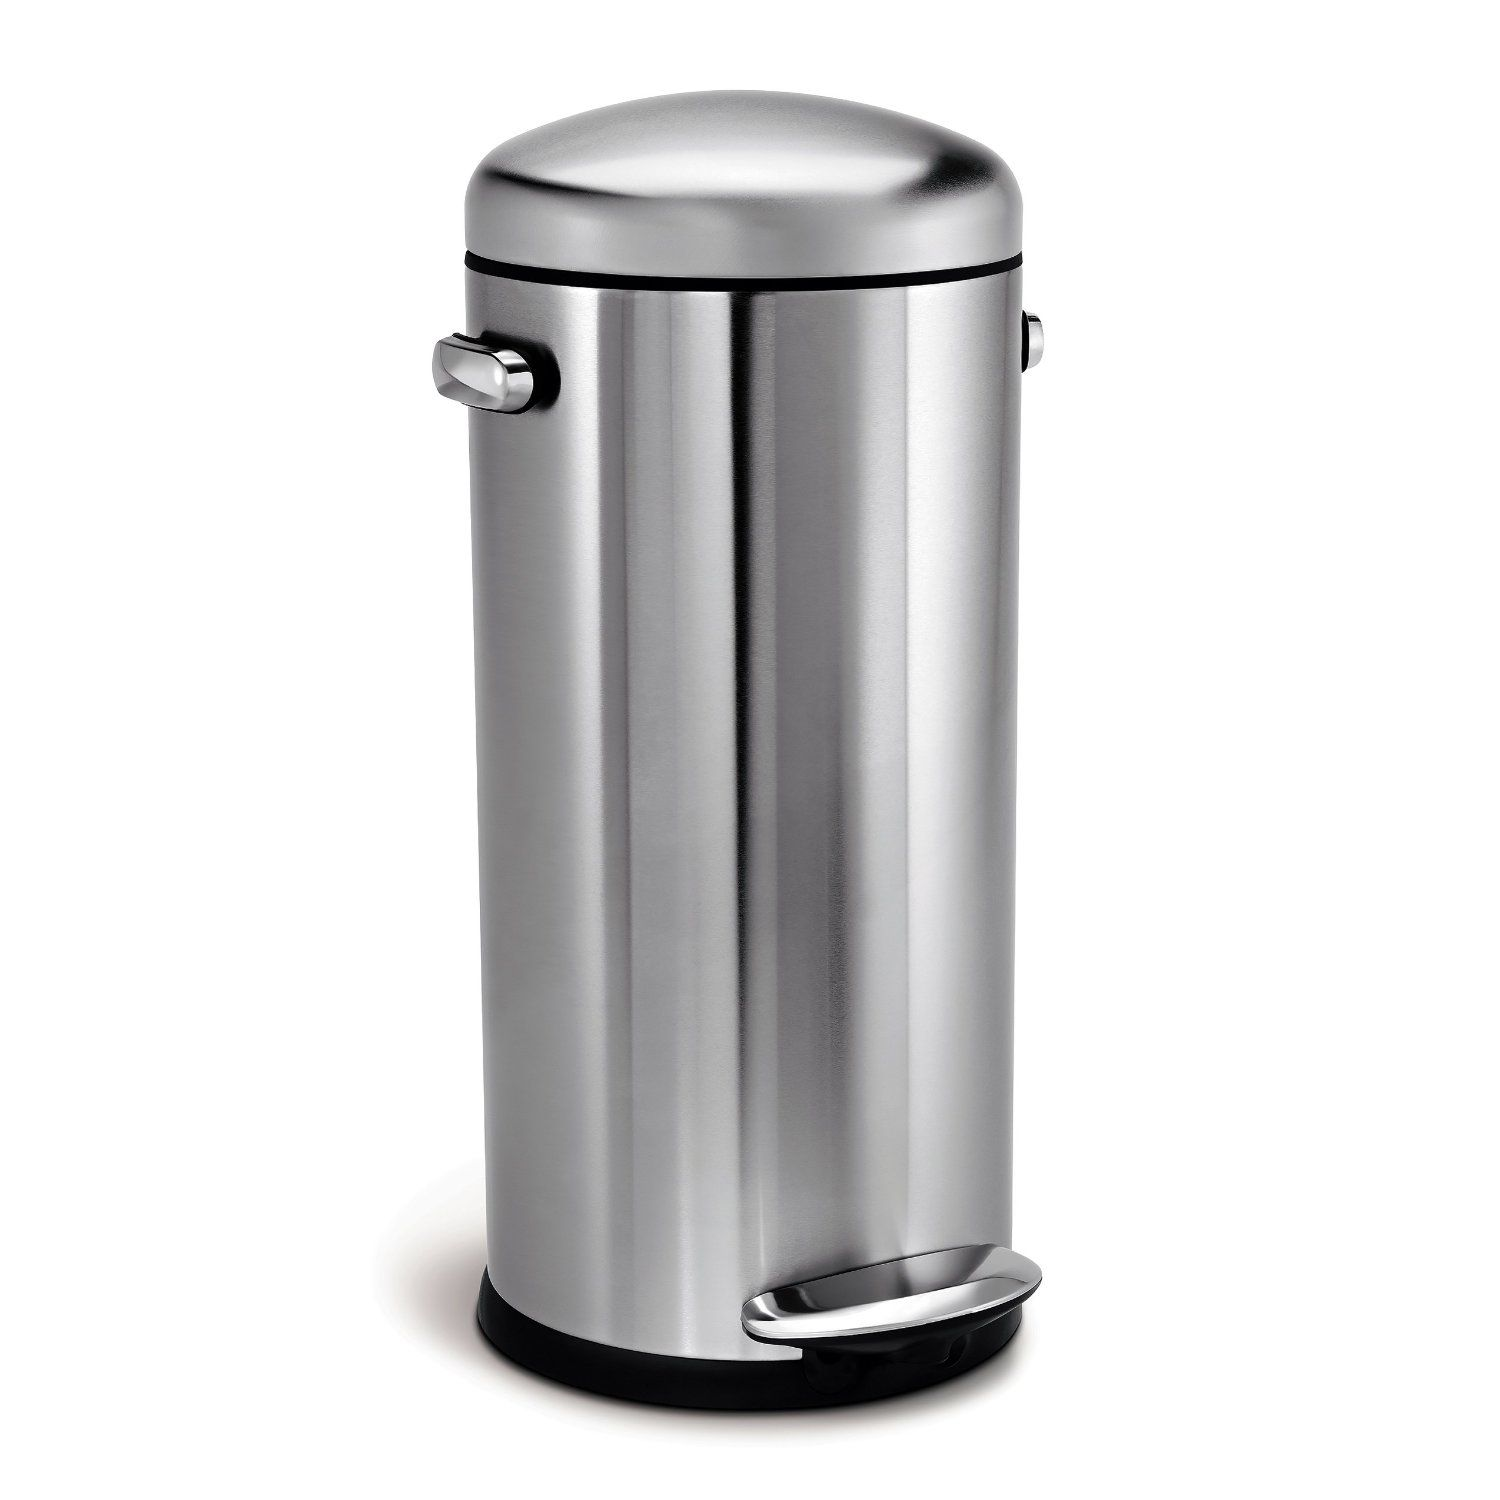 Amazon simplehuman Round Retro Step Trash Can Stainless Steel